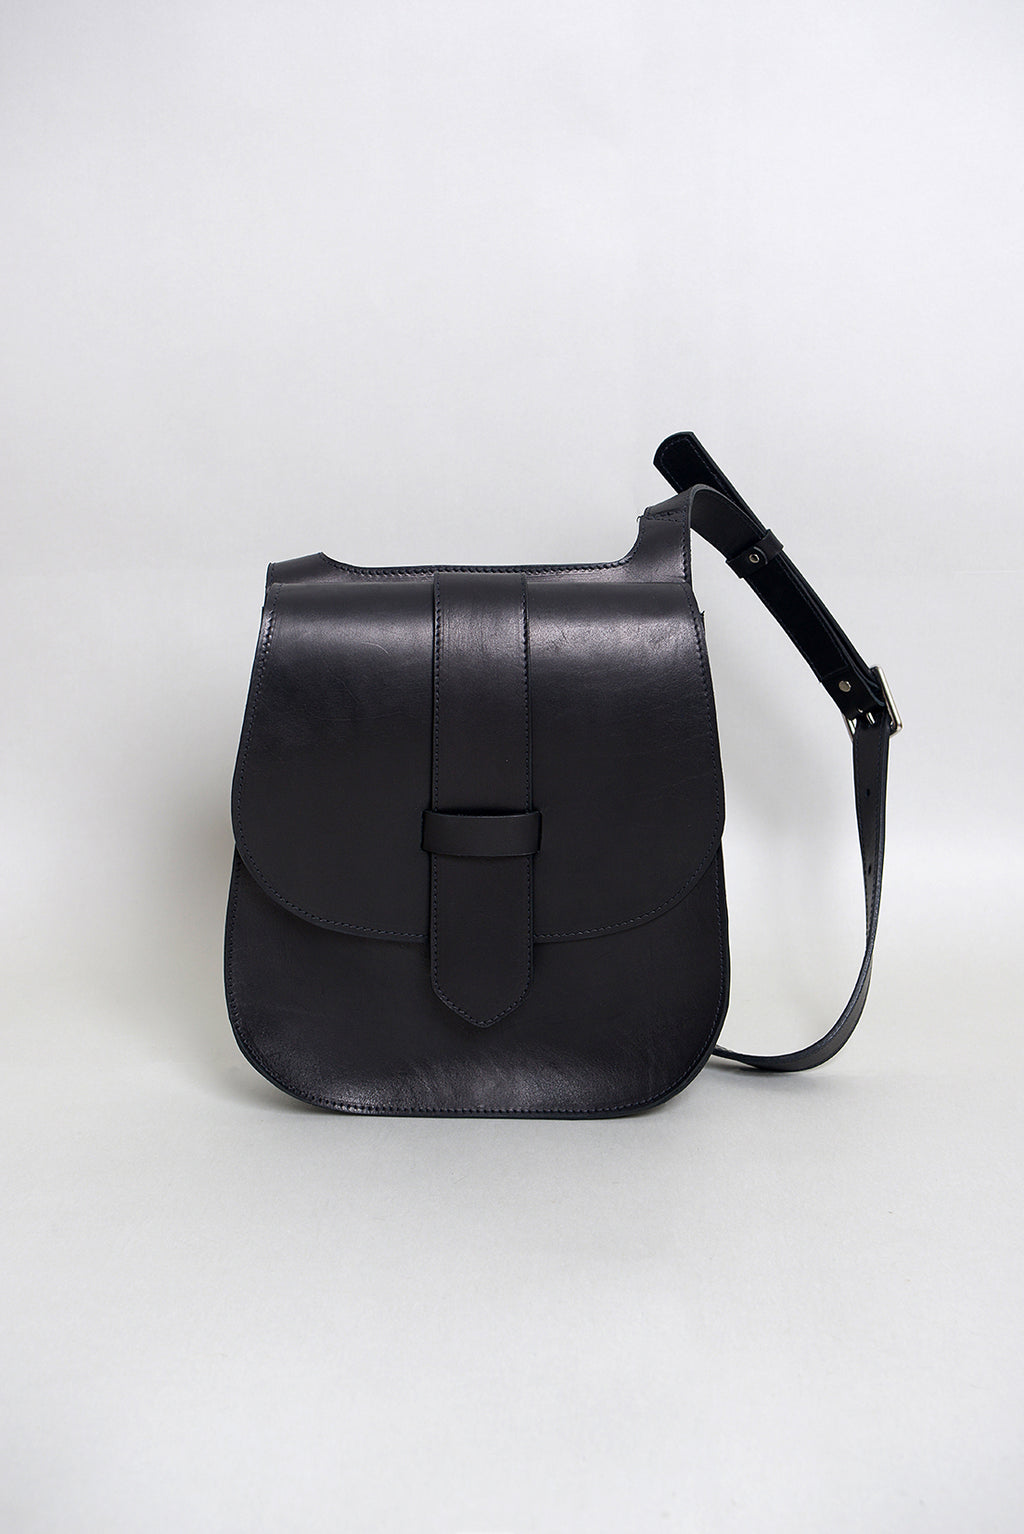 Handcrafted Black Leather 70's Style Saddle Bag